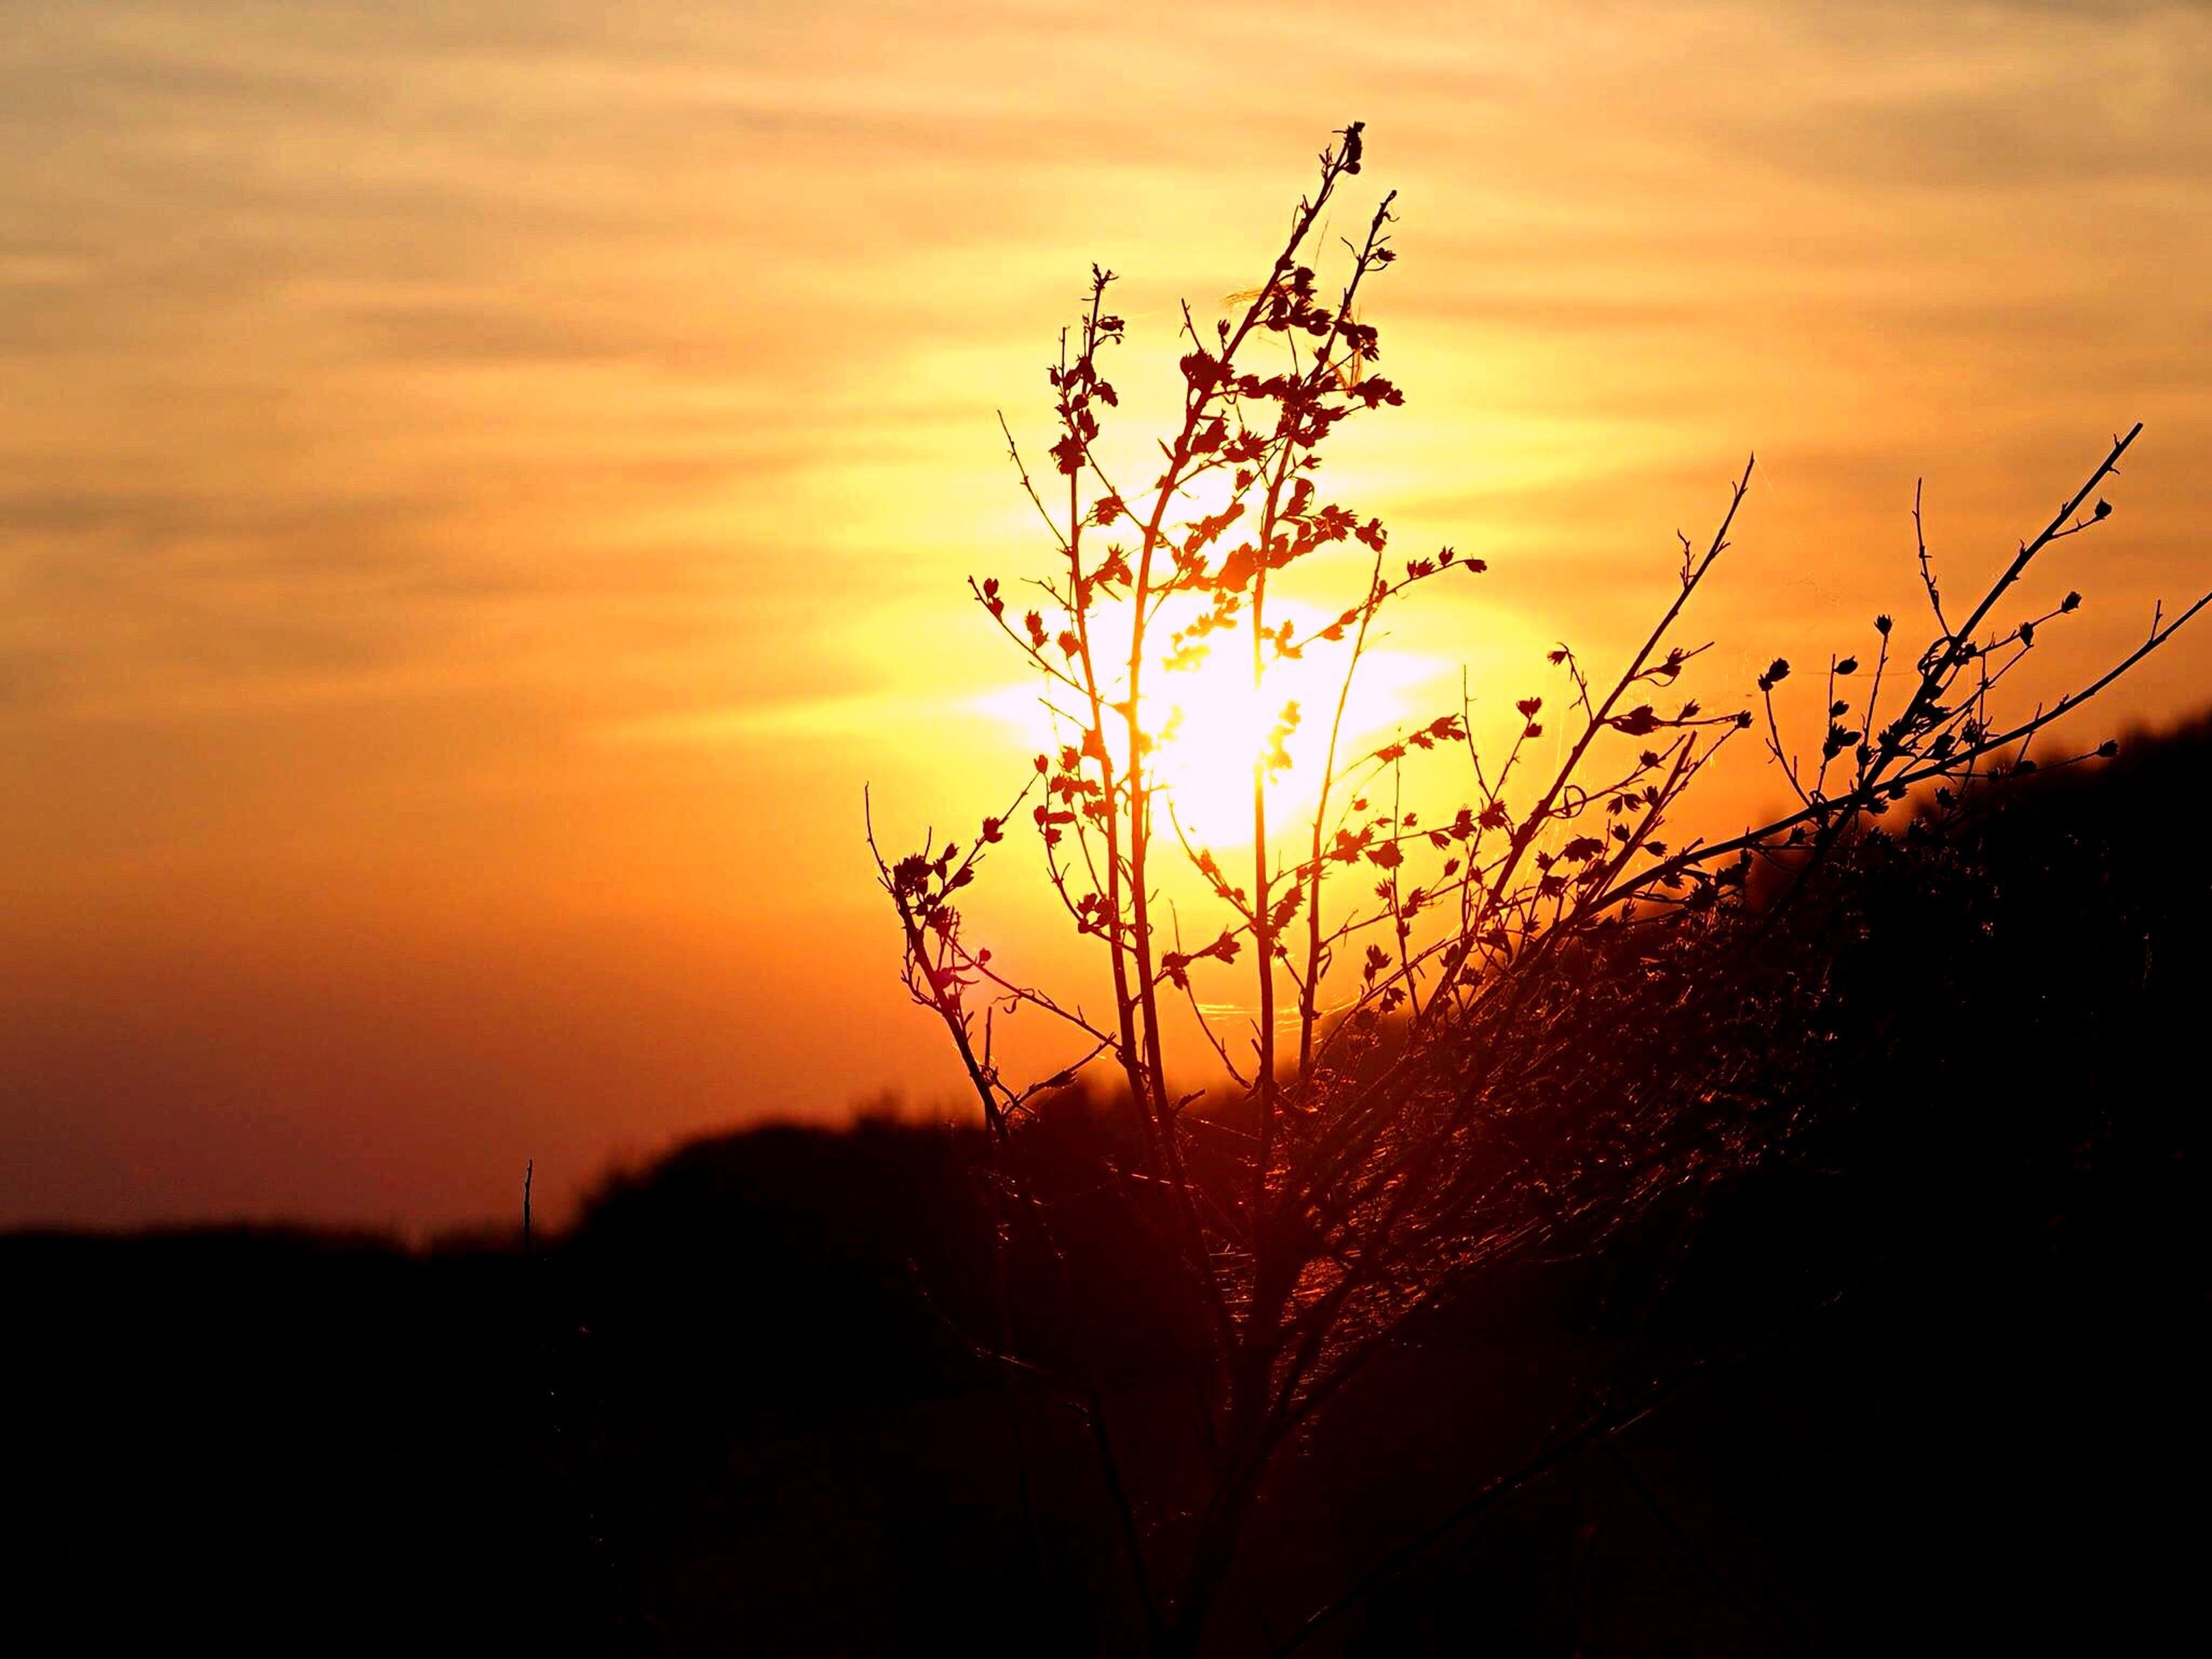 sunset, silhouette, beauty in nature, sun, sky, orange color, growth, nature, plant, tranquility, scenics, tranquil scene, stem, focus on foreground, field, idyllic, close-up, landscape, flower, sunlight